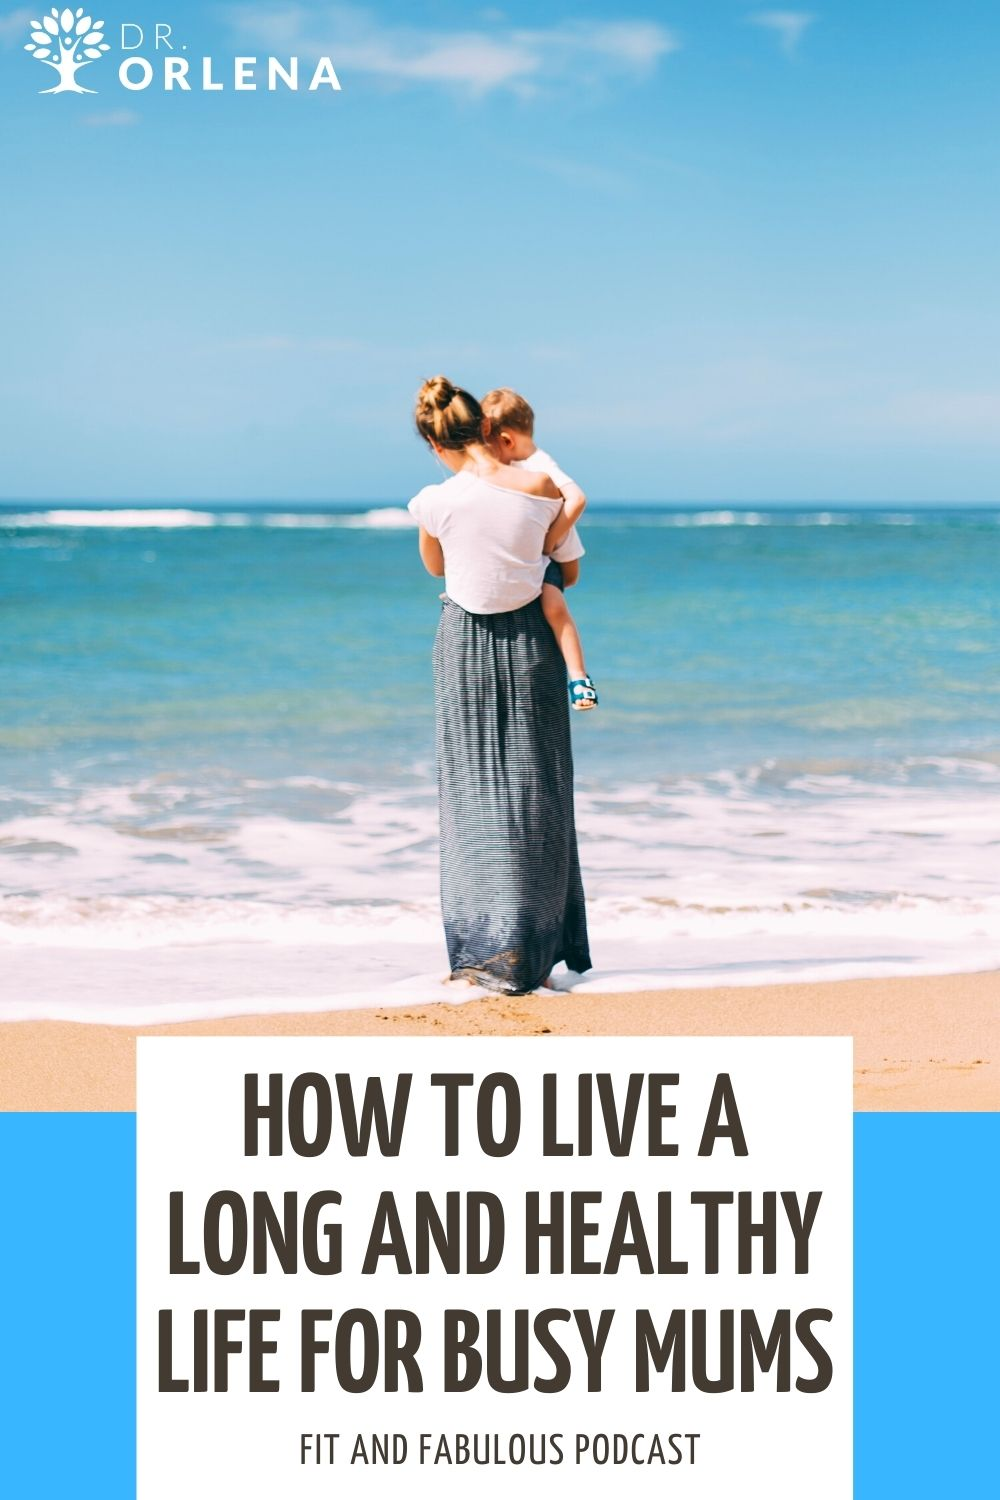 A mom walking on the beach while carrying her child #momhealth #healthylife #healthyliving #wellness